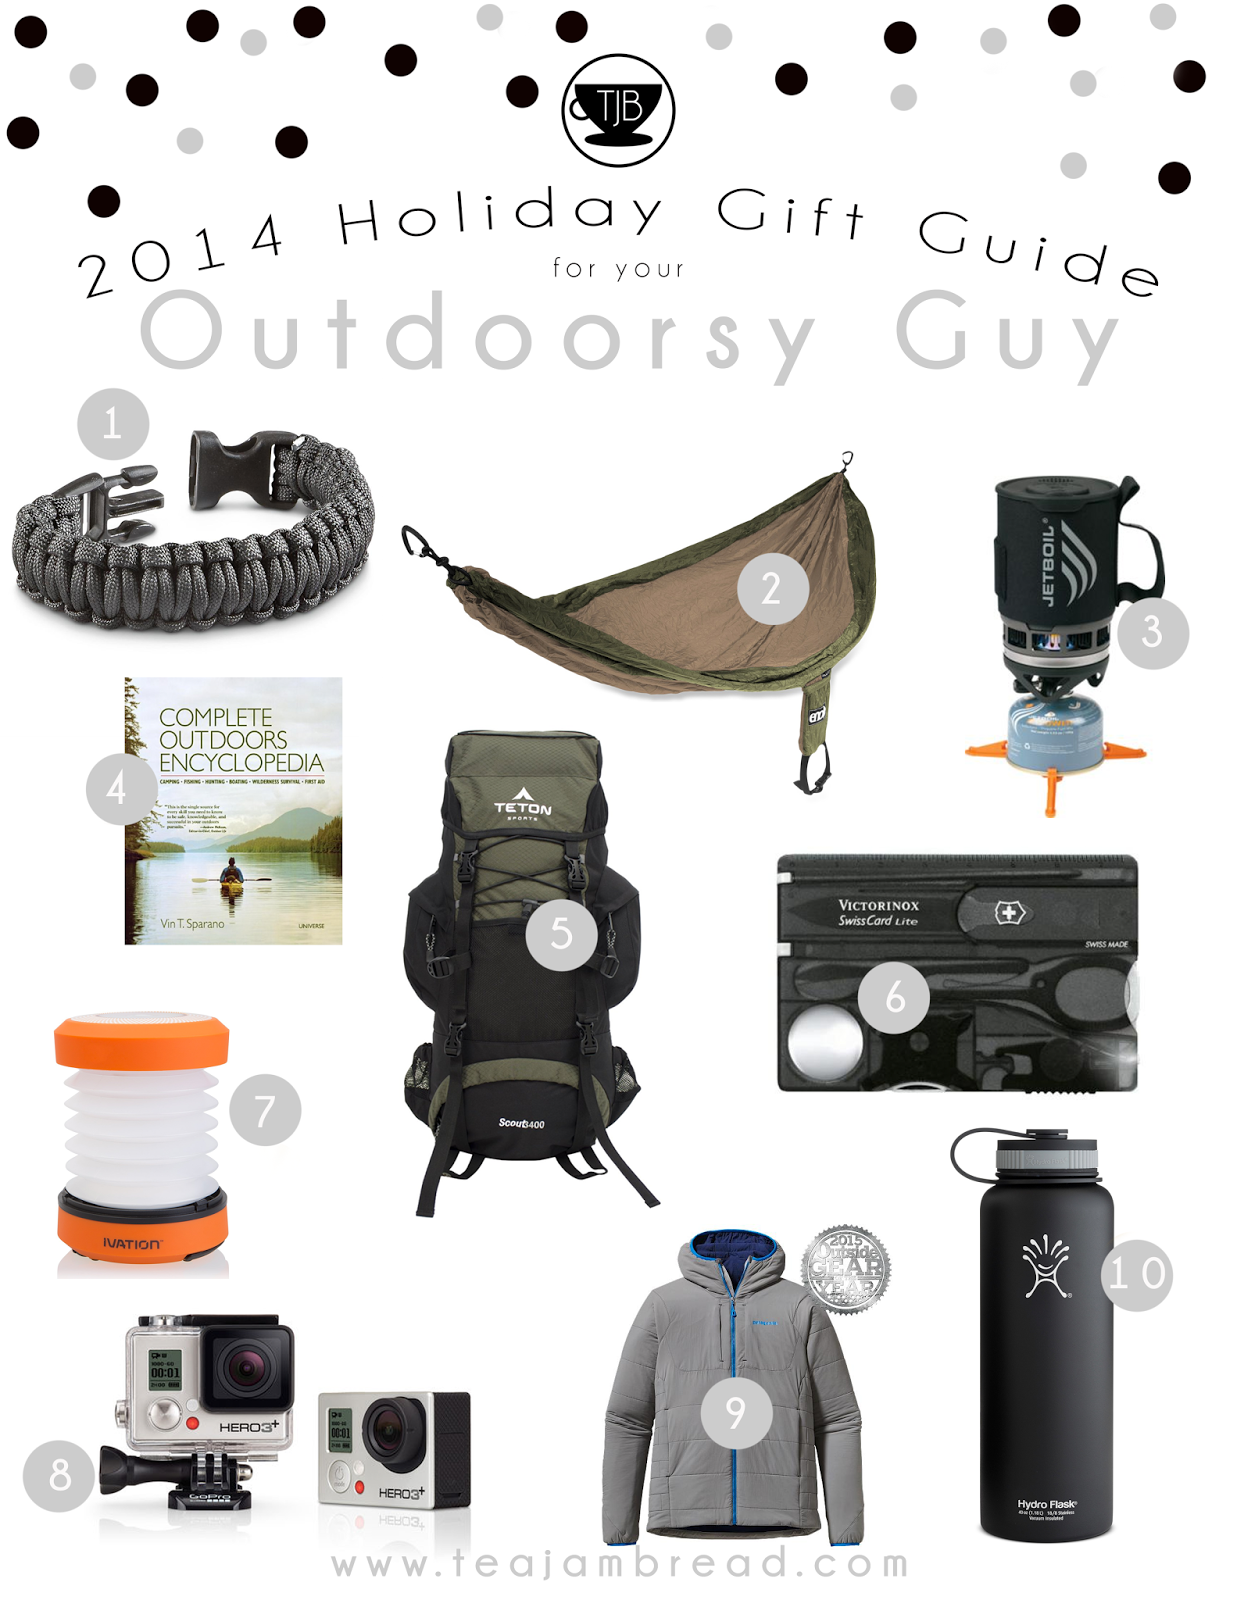 2014 Holiday Gift Guide: Outdoorsy Guy | Gift Guides | Pinterest ...